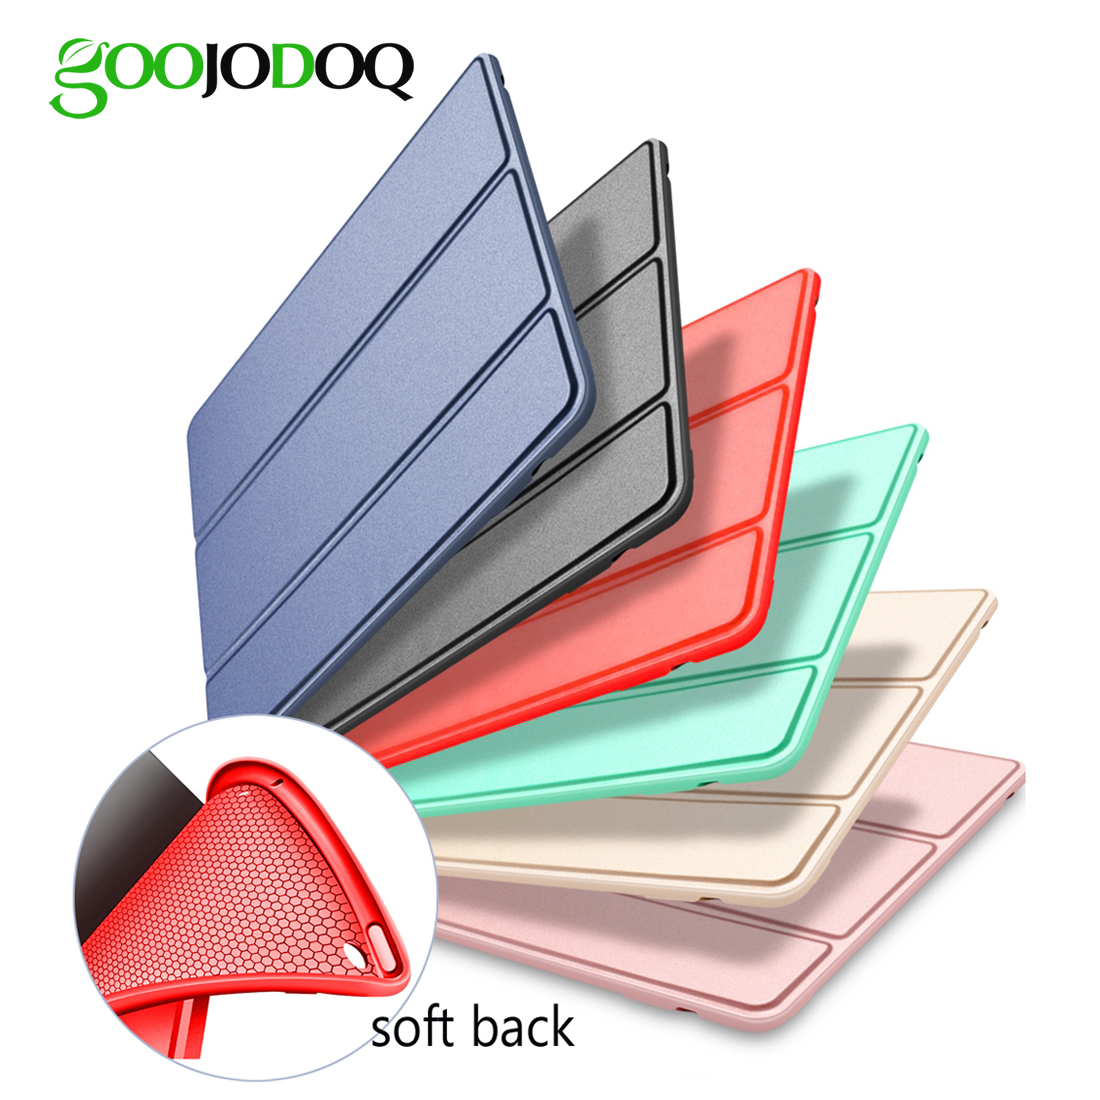 For iPad Air 2 Air 1 Case Silicone Soft Back Slim Pu Leather Smart Cover for Apple iPad Air Case Sturdy Stand Auto Sleep / Wake surehin nice tpu silicone soft edge cover for apple ipad air 2 case leather sleeve transparent kids thin smart cover case skin